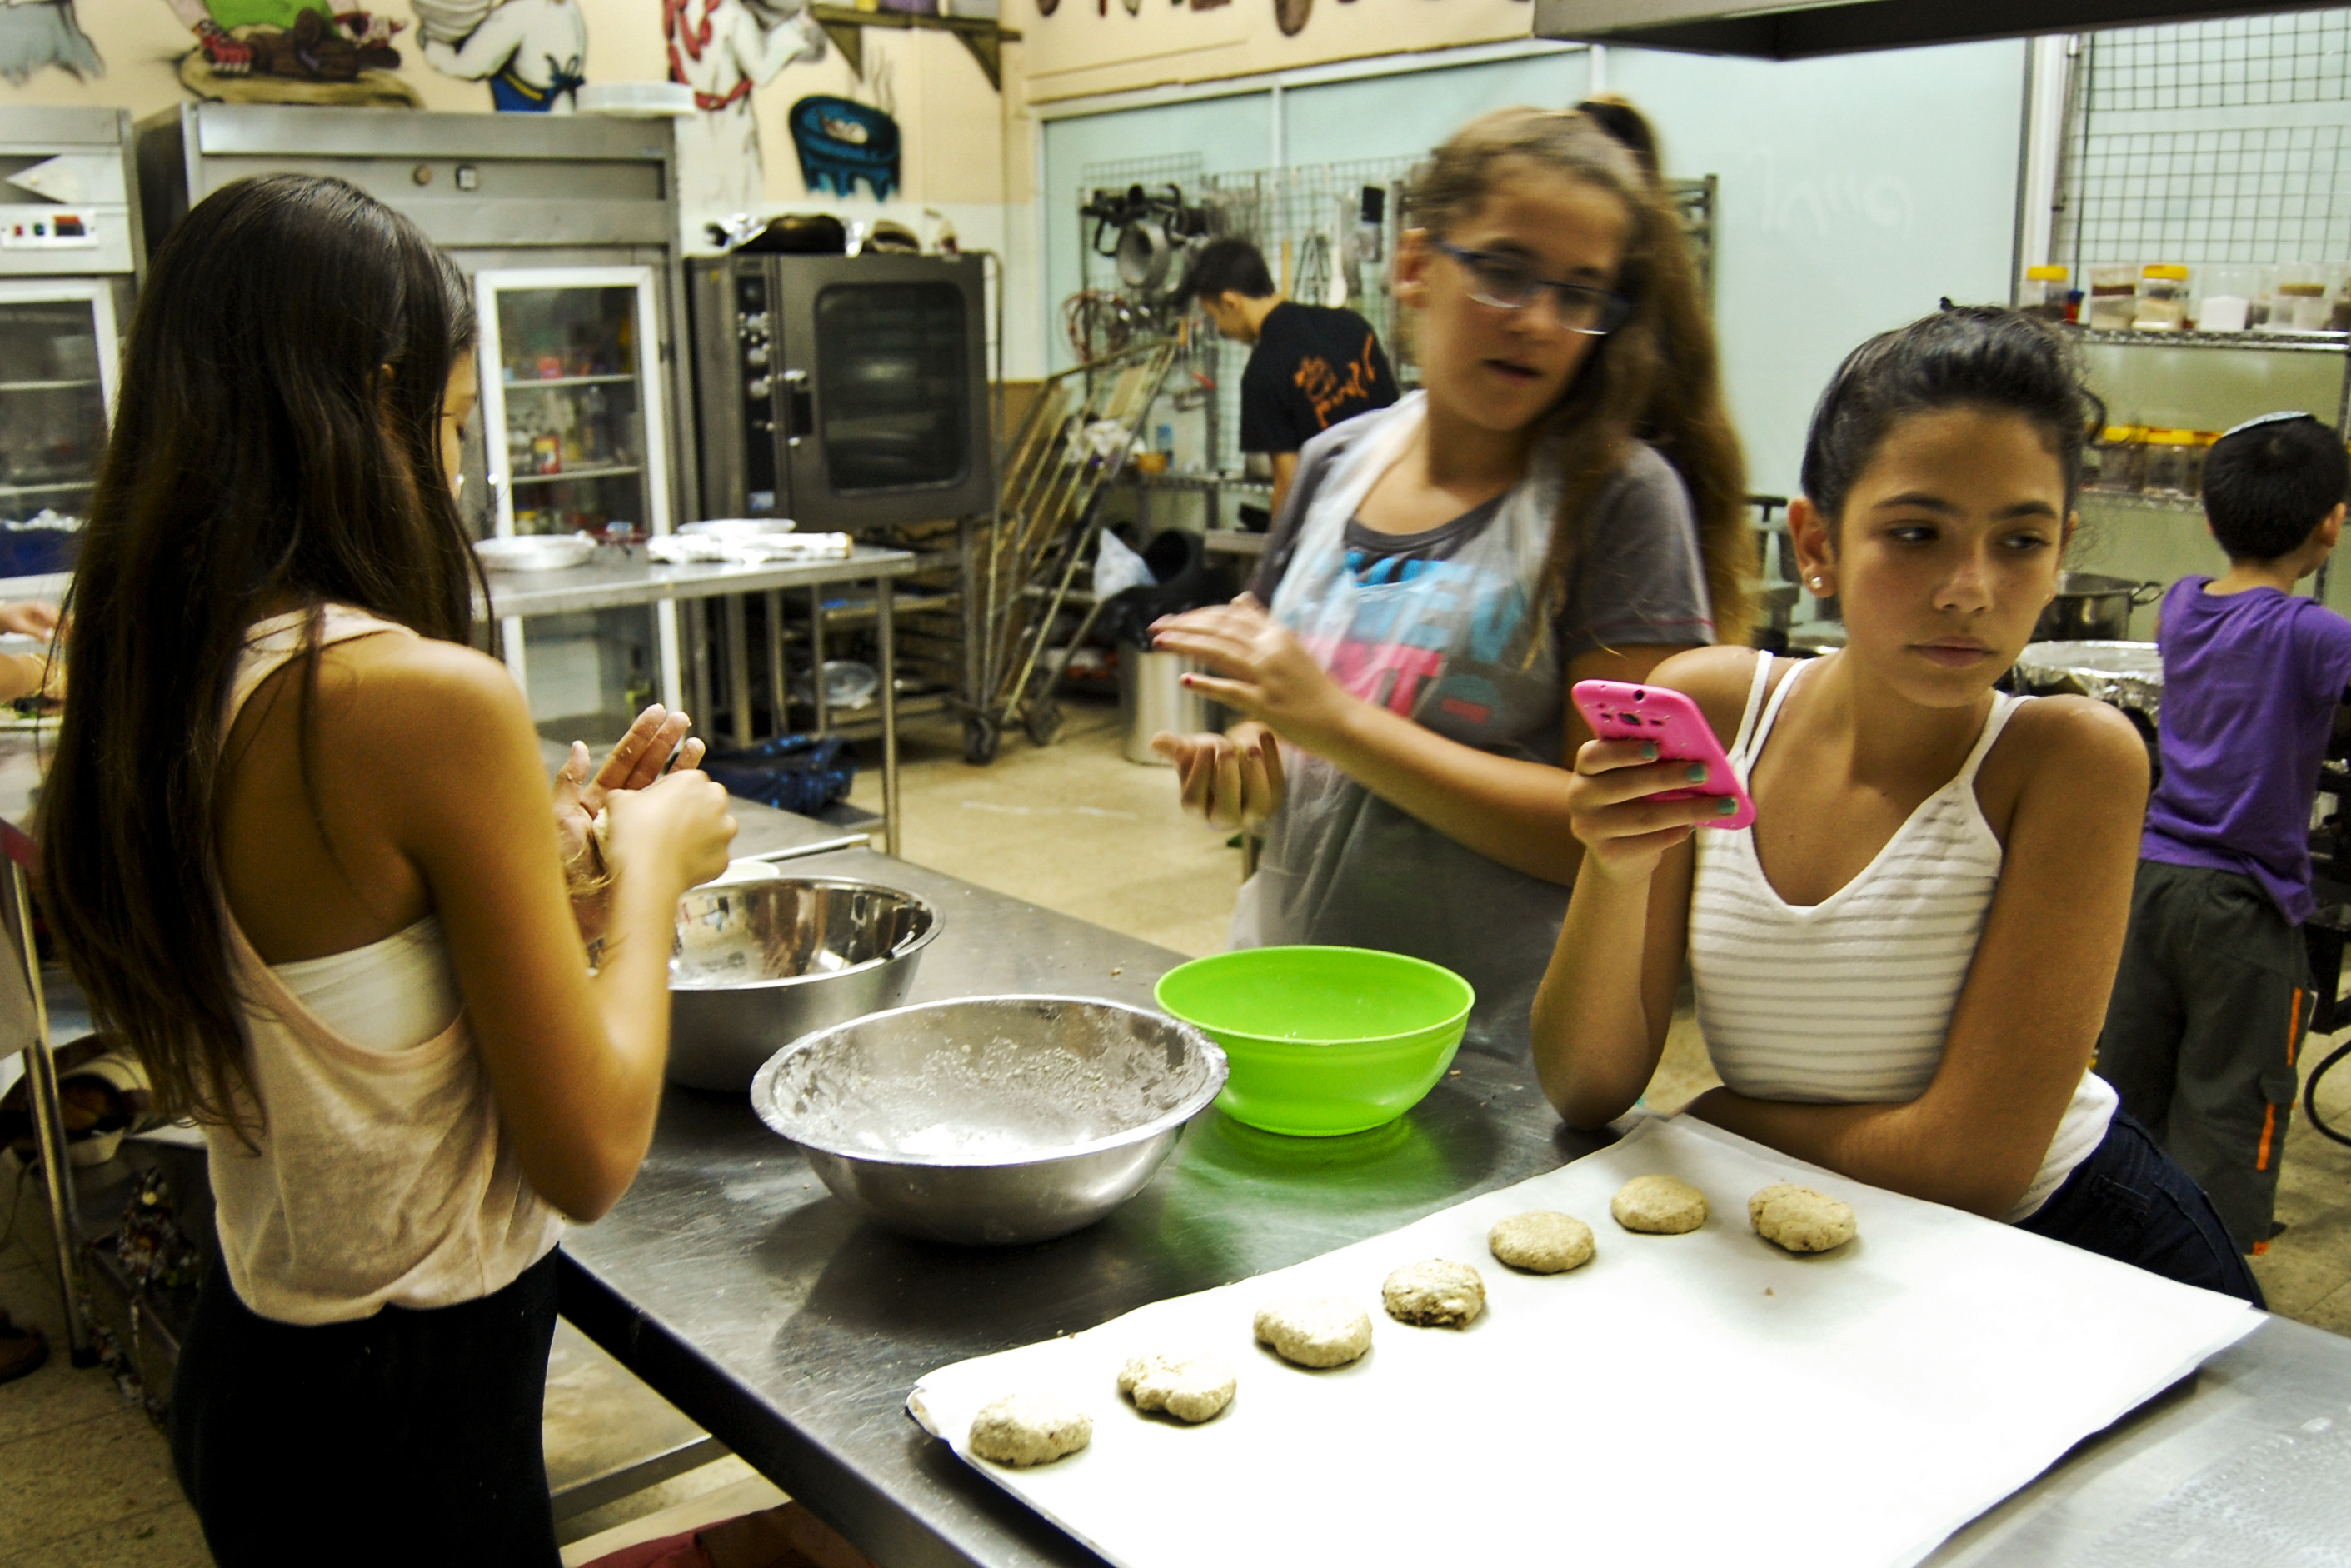 Noa Binyamin, 11, peeks at her friend's pink cell phone while shaping the dumpling mixture in her hands.